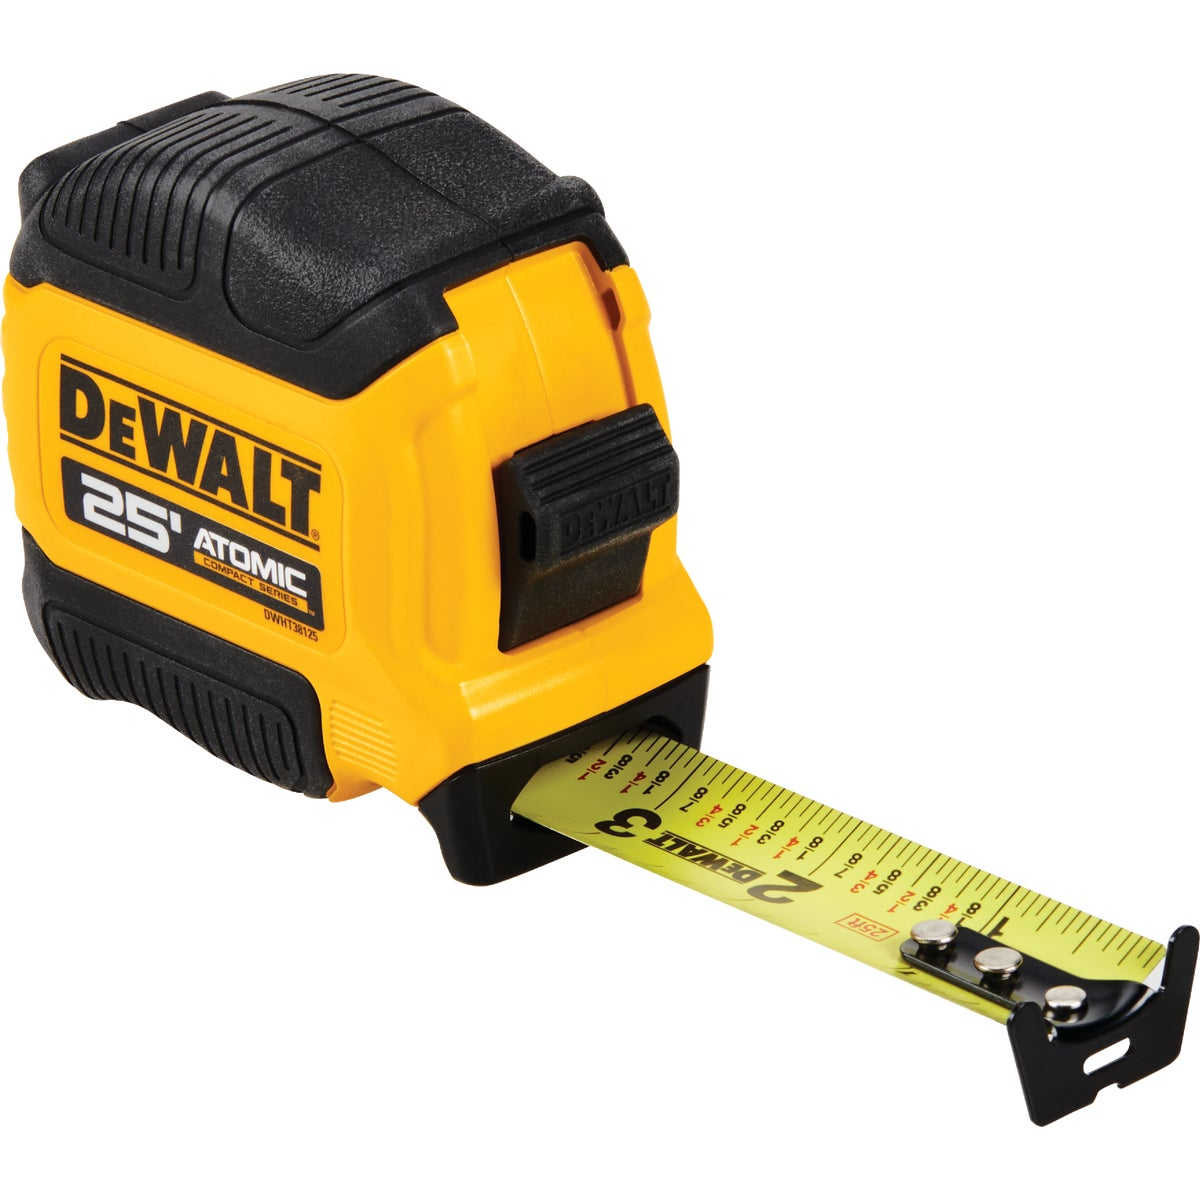 "1-1/8""X25' TAPE RULE - DWHT33373 by Stanley Tools"